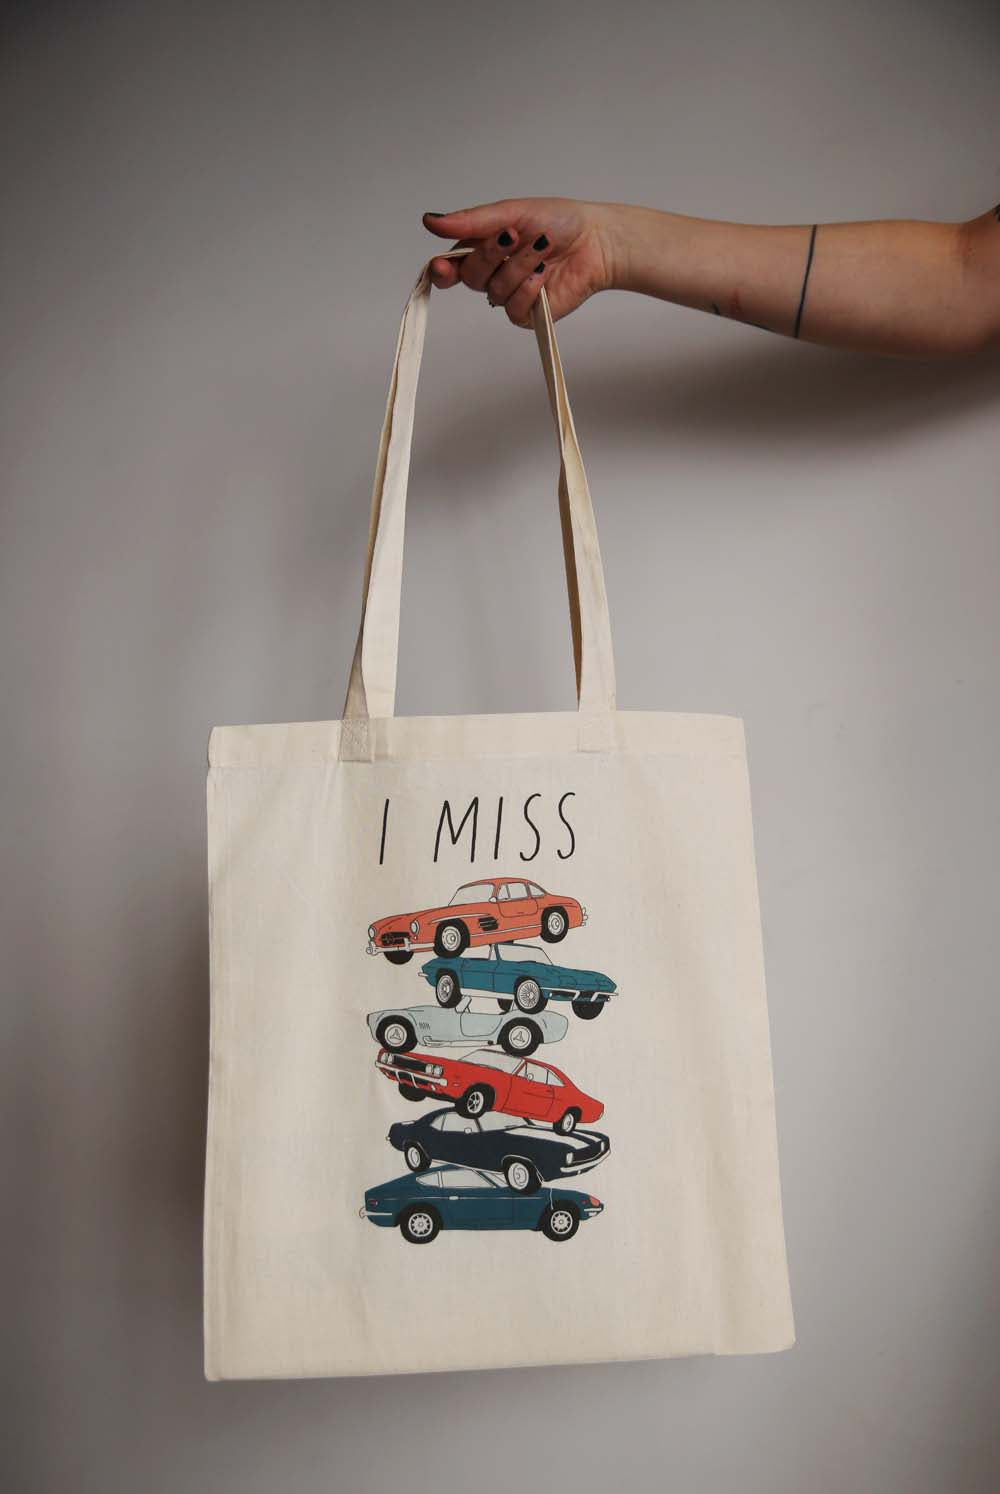 I MISS VINTAGE CARS tote bag